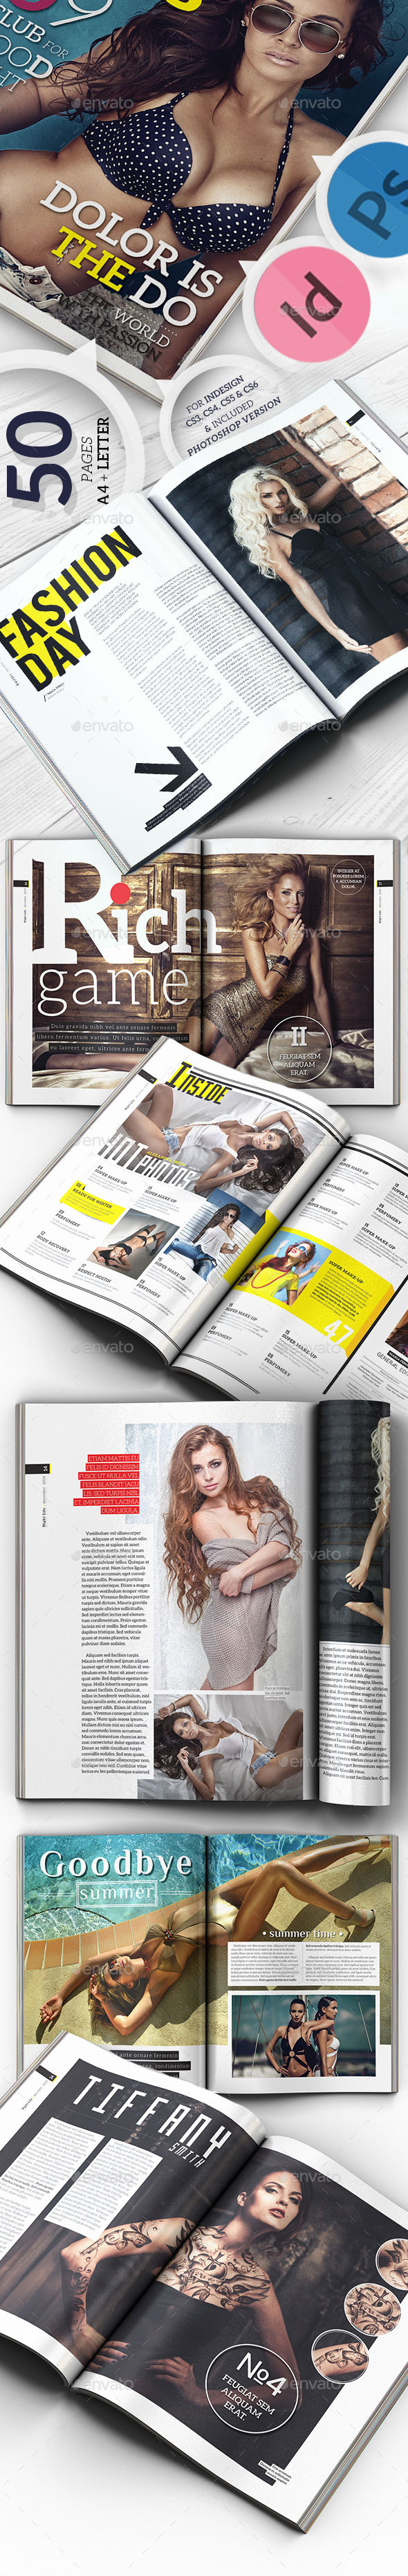 Creative Magazine For Indesign & Photoshop A4 + Letter Size - Magazines Print Templates